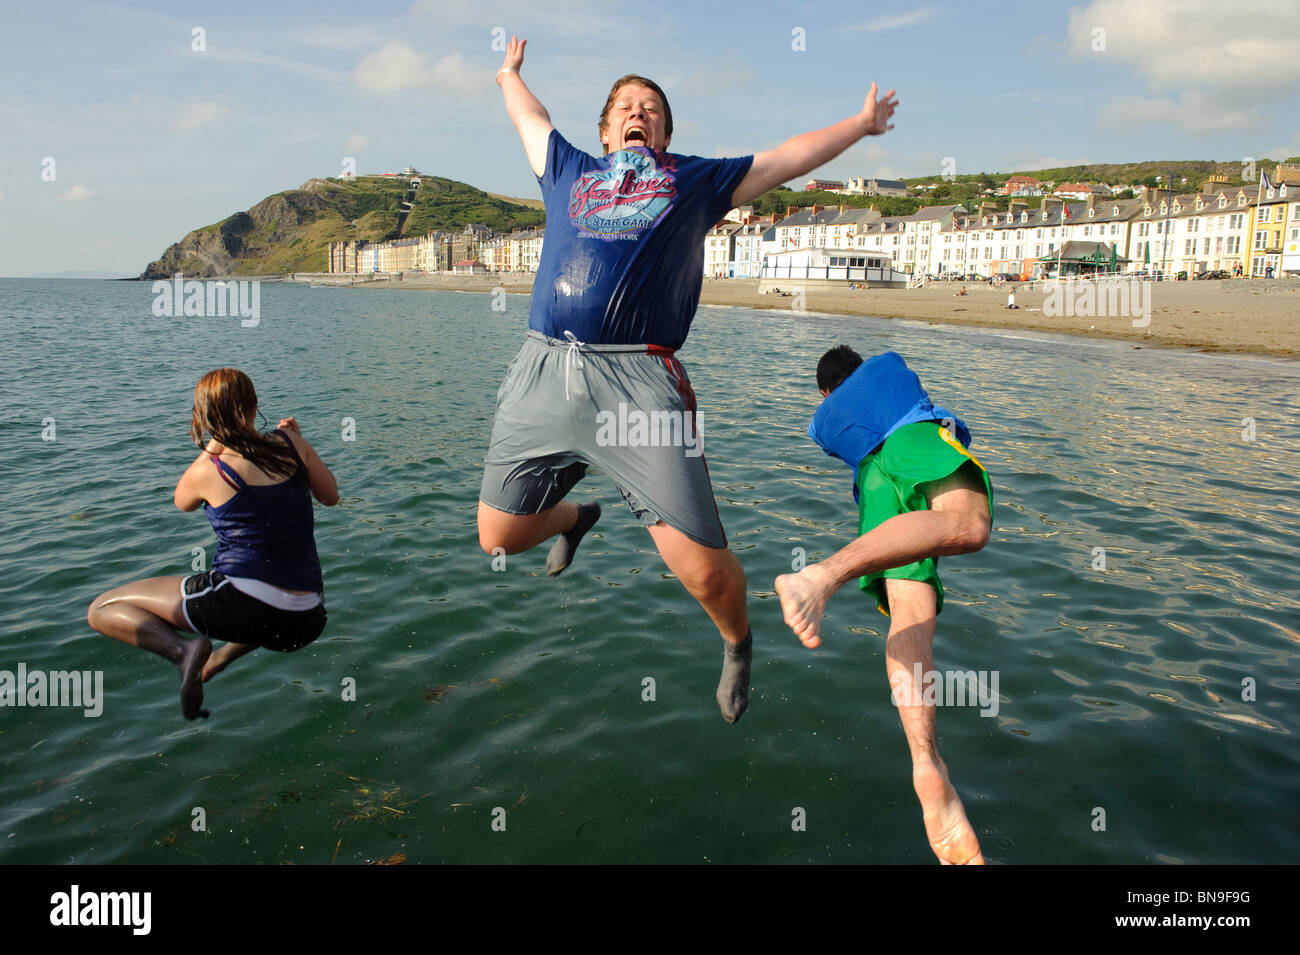 Three Teenagers jumping into the sea off the jetty on the beach at Aberystwyth Wales UK on a hot day in summer, - Stock Image